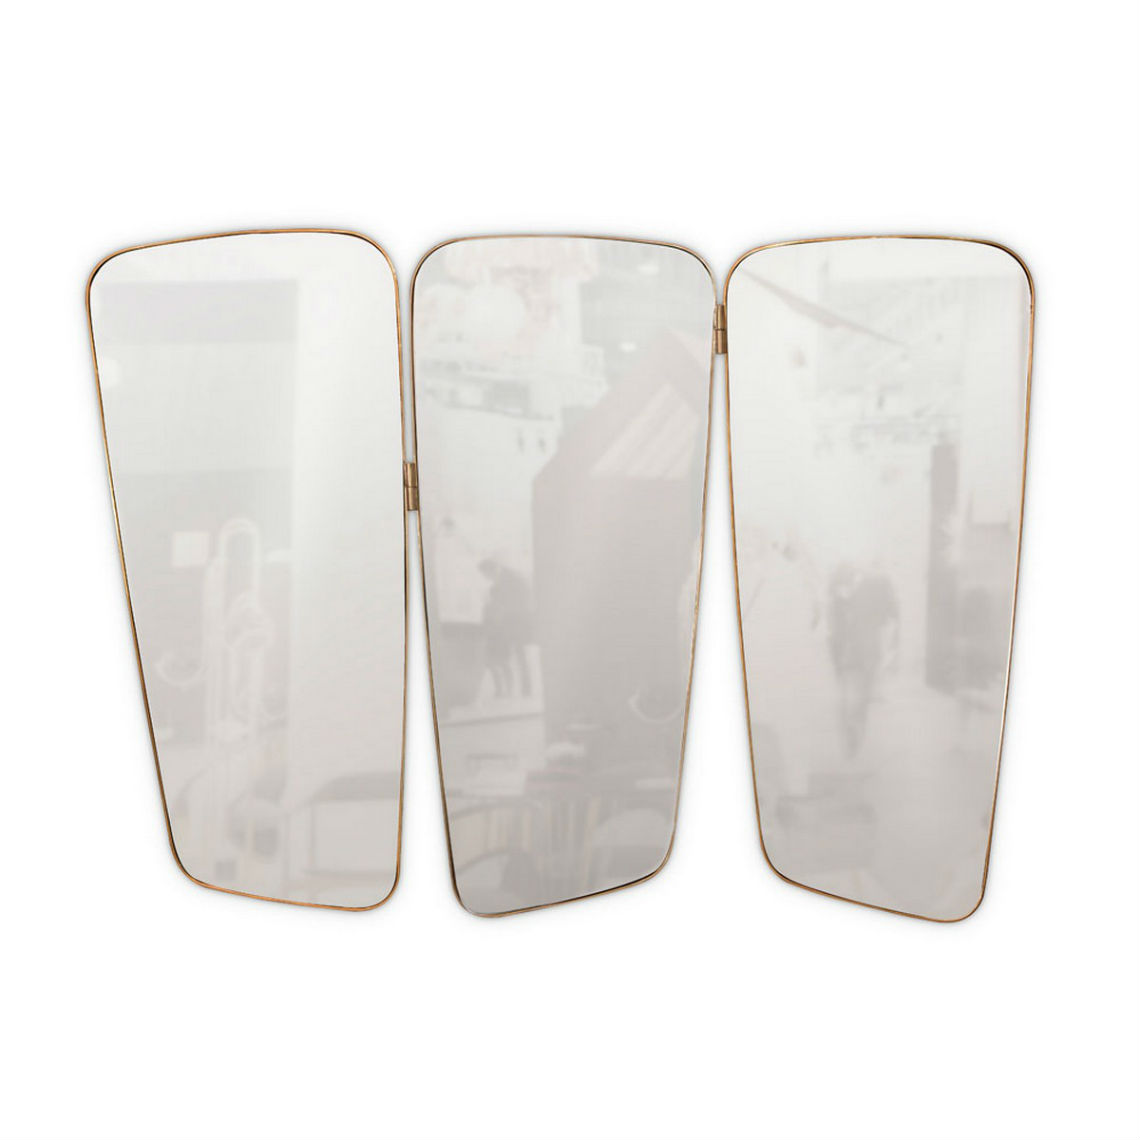 Modern Mirrors To Match Your Living Room Sideboard modern mirrors Modern Mirrors To Match Your Living Room Sideboard 5 5